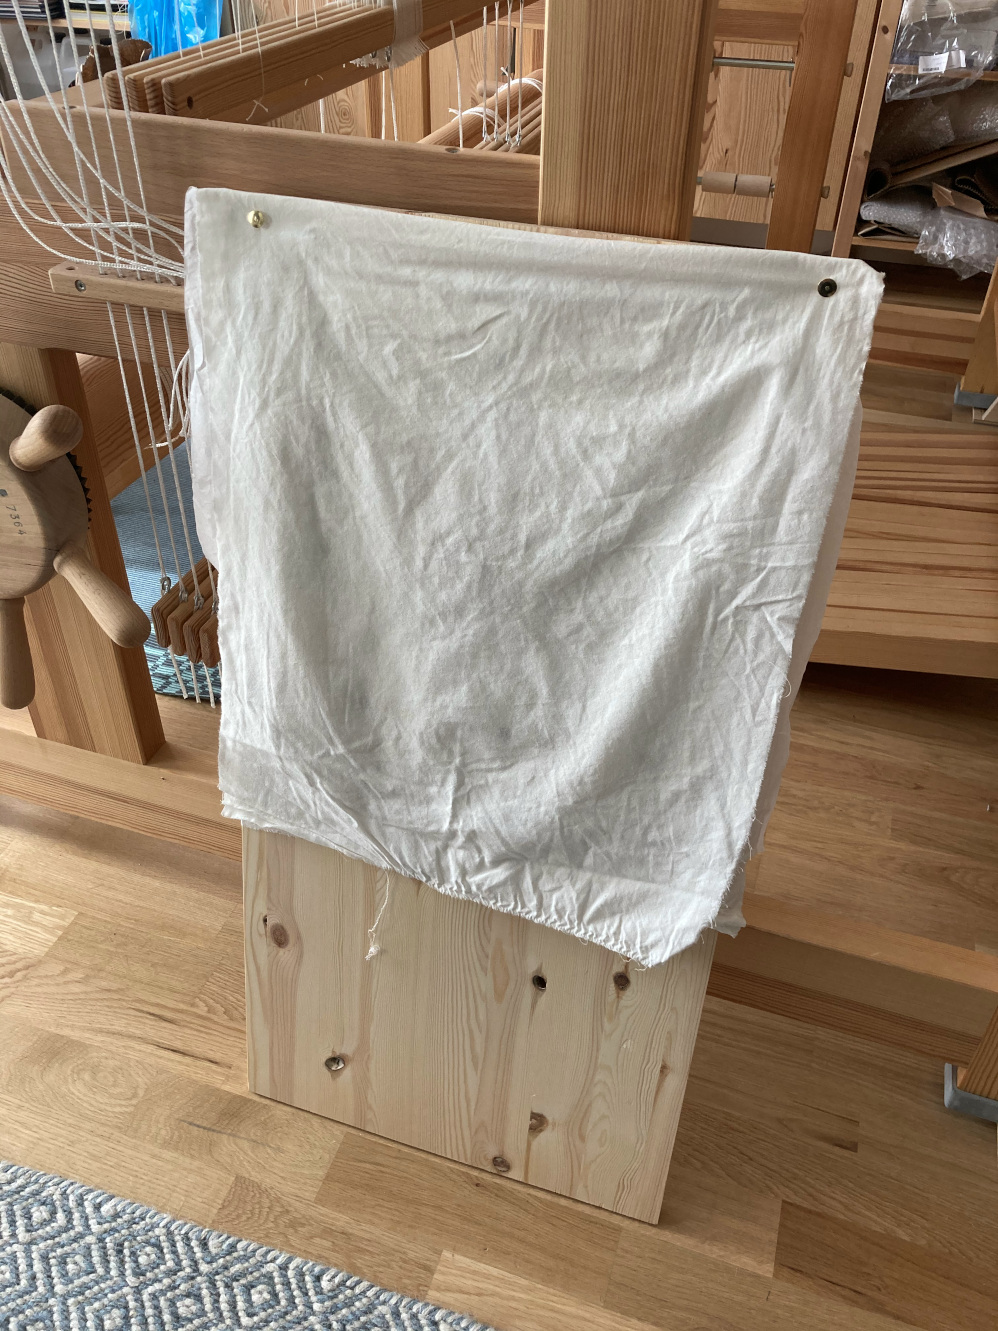 The plank, vertical again, with the wet fabric folded over the embroidery.